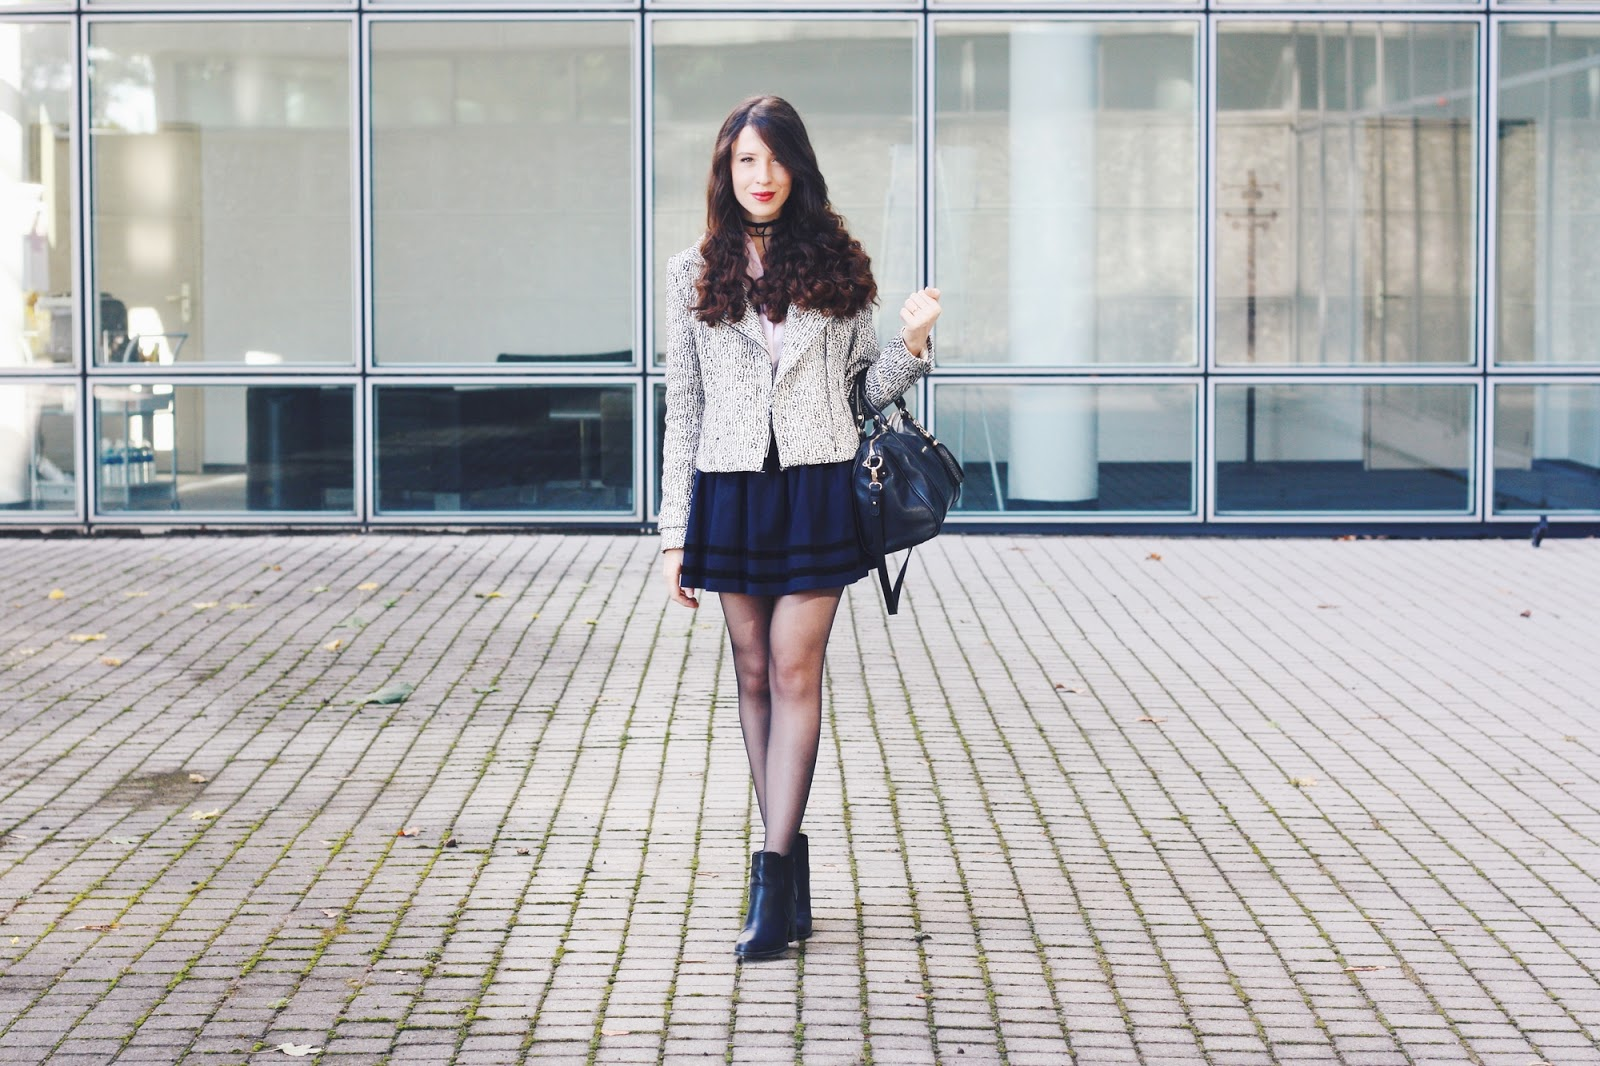 7626a39cbc7 the preppy girl who was wearing a perfecto